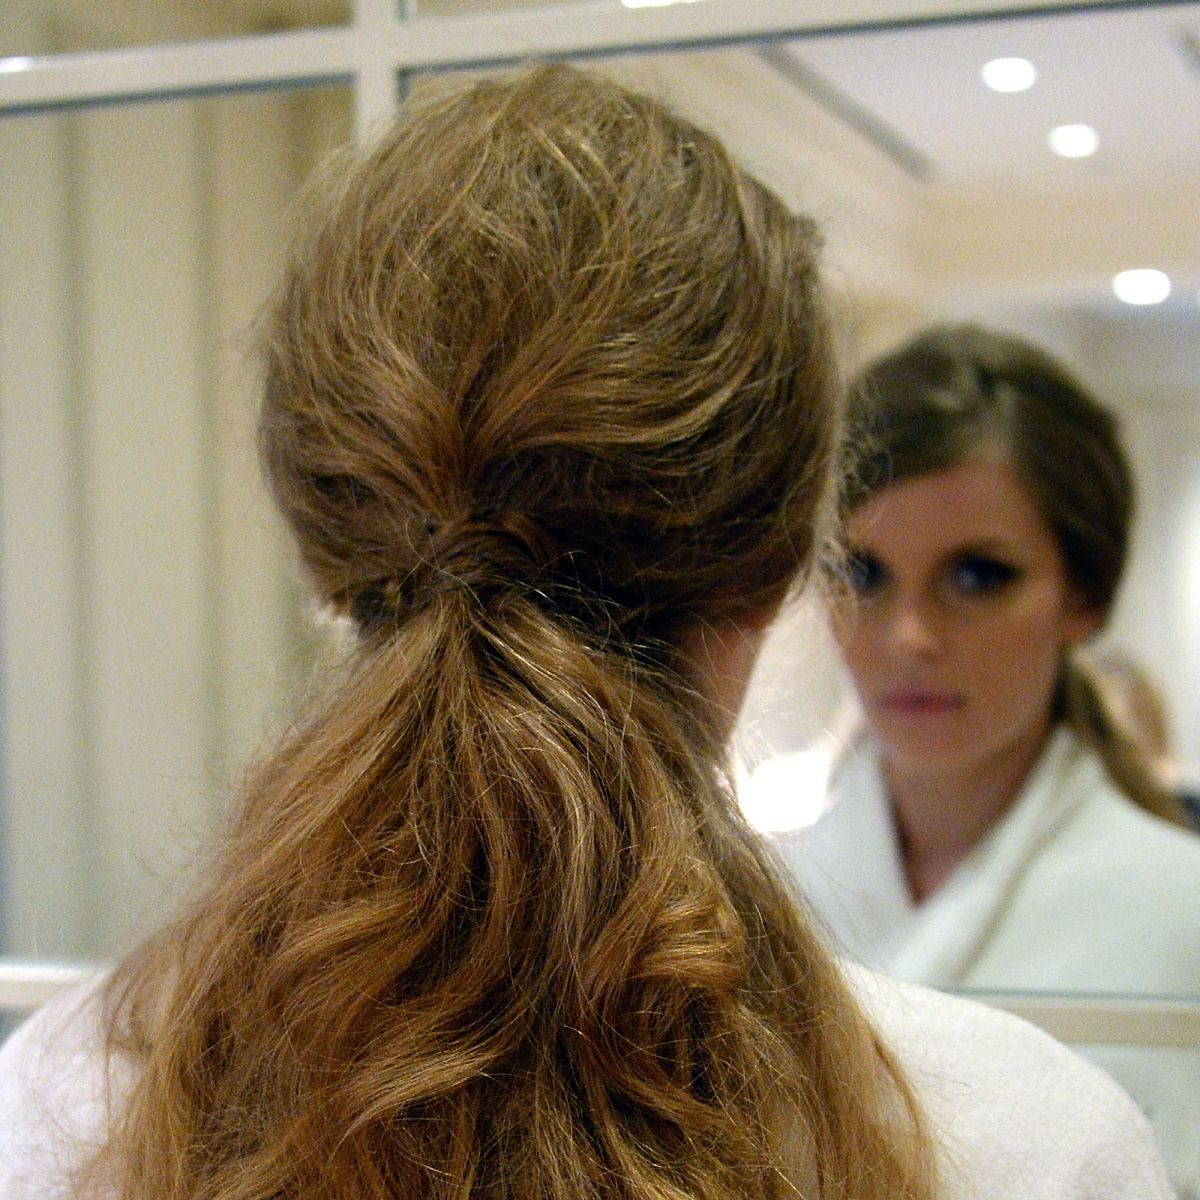 Hairstyle Tutorial: 3 Ponytails For The Weekend Pertaining To Well Known Long Tousled Voluminous Hairstyles (View 8 of 20)